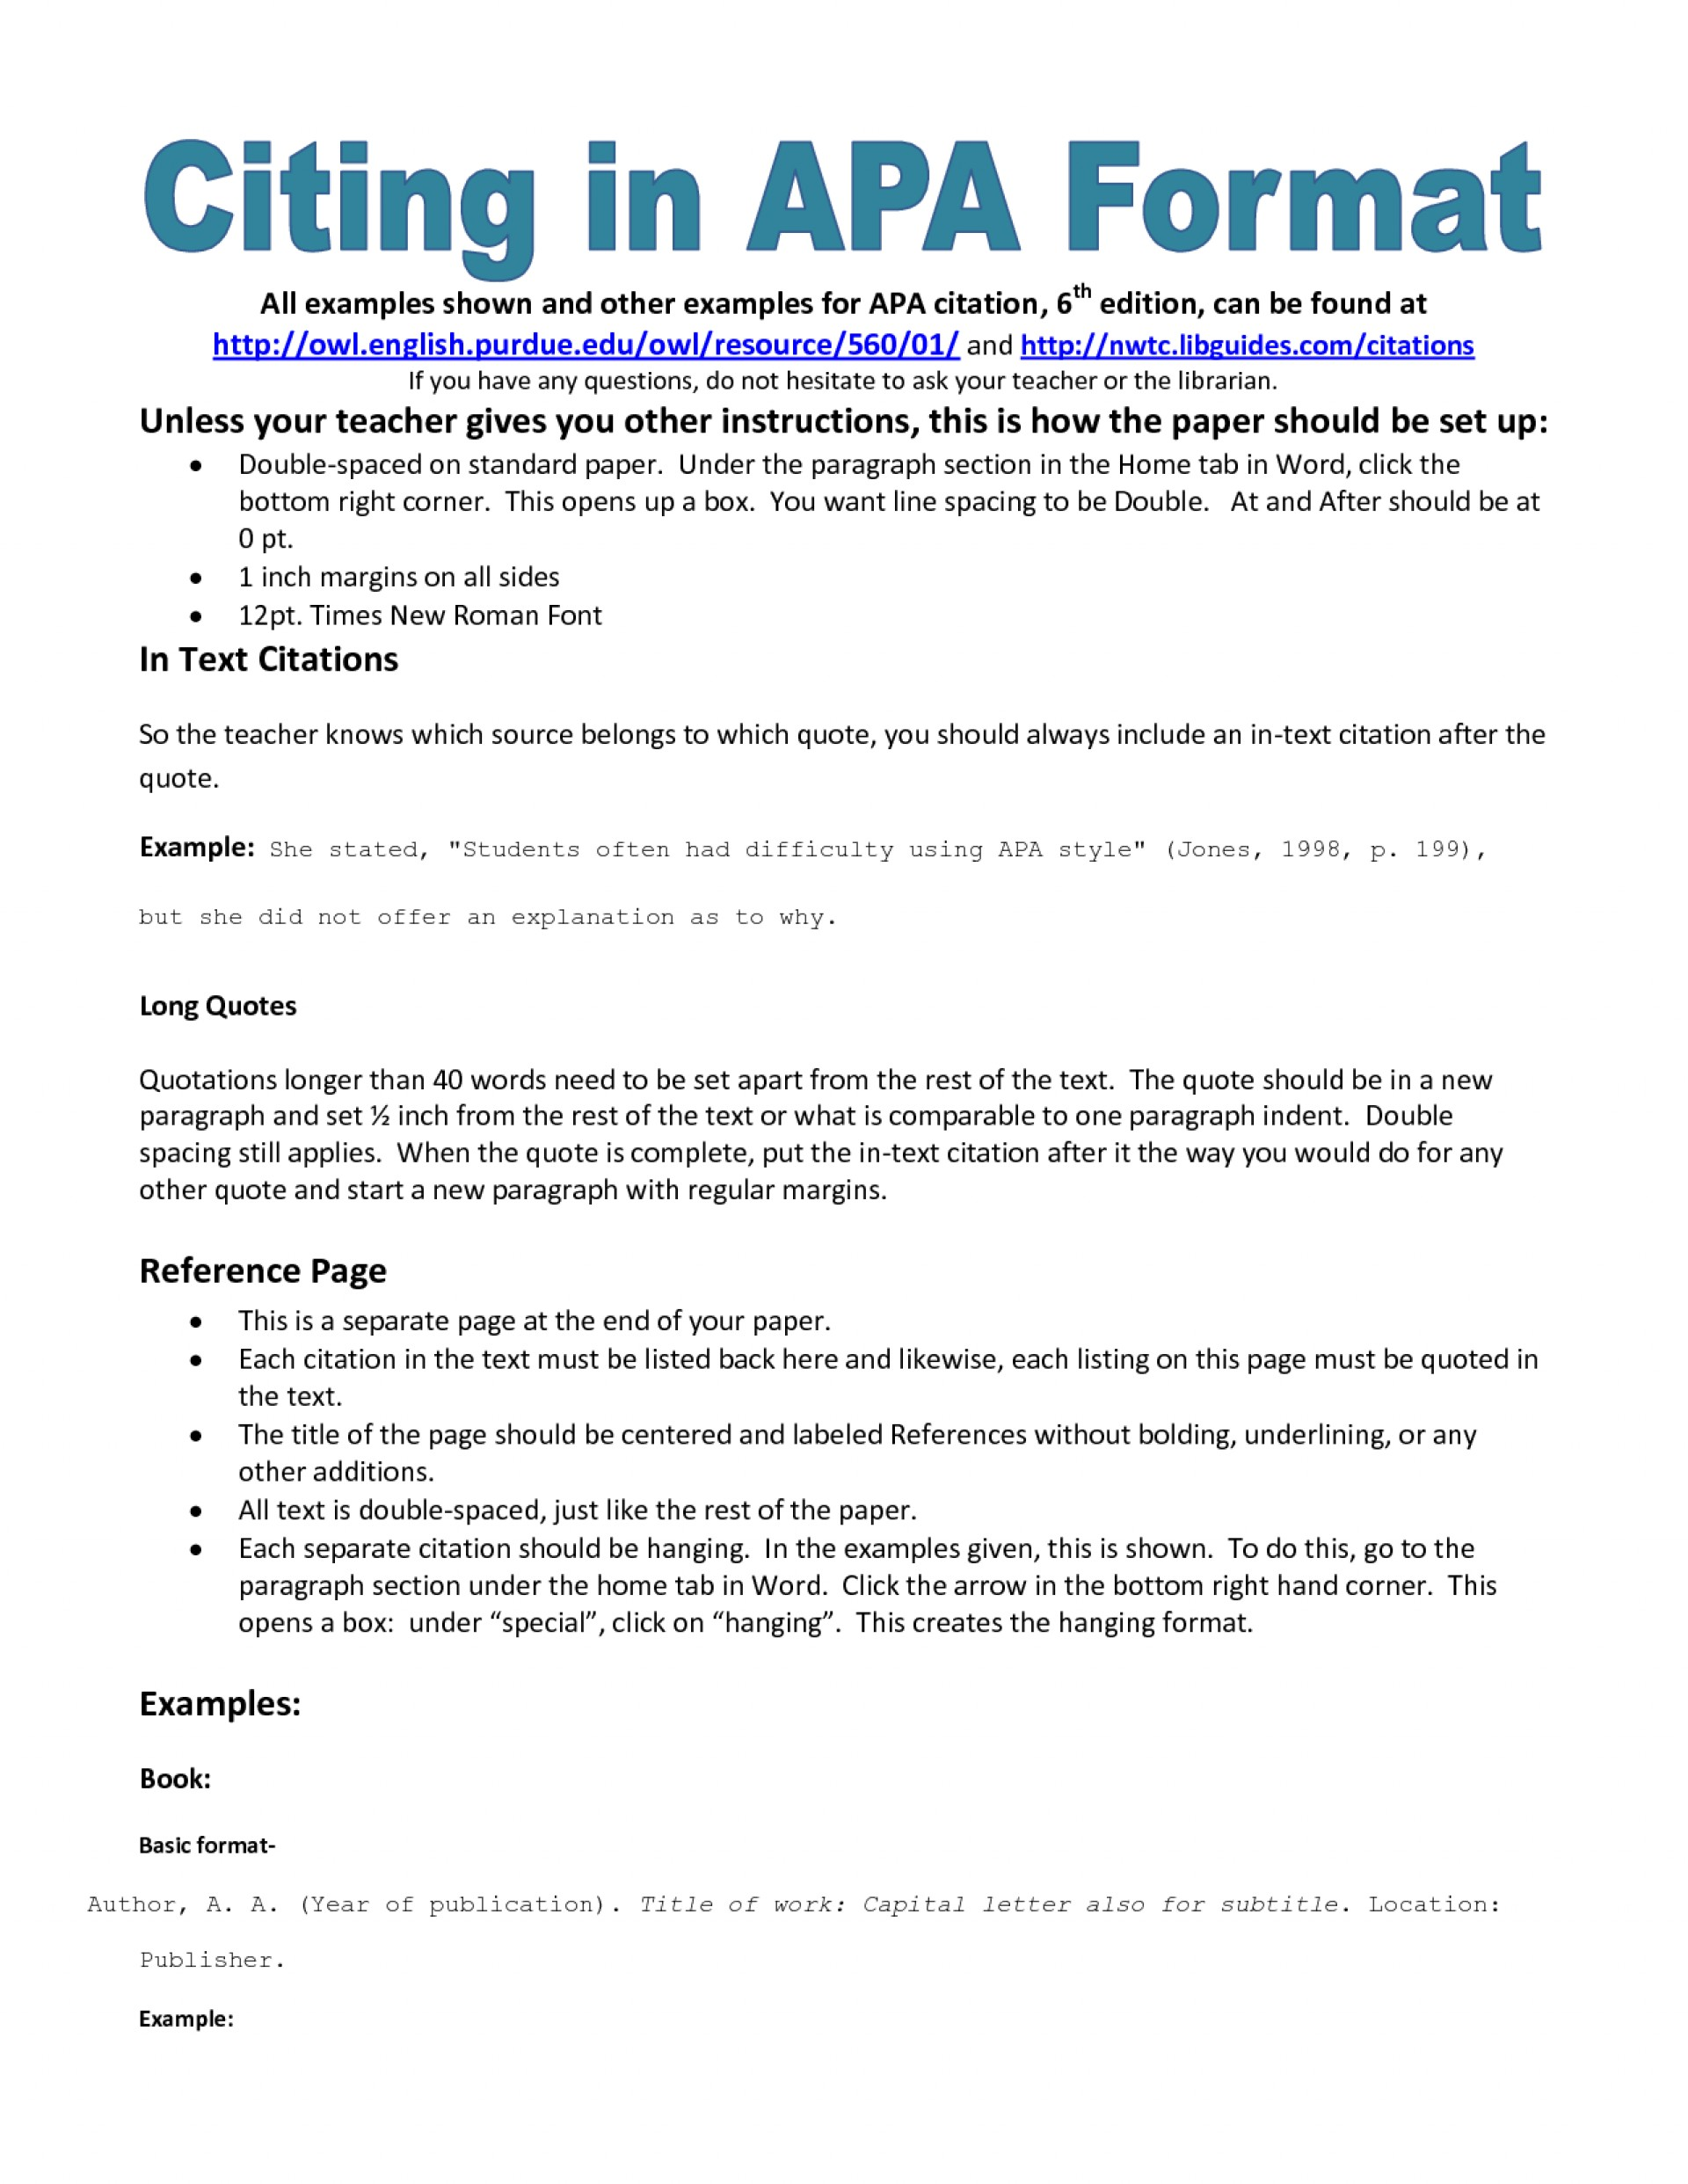 001 Research Paper Apa Format Frightening Citation In Text Citations Style Model 1920